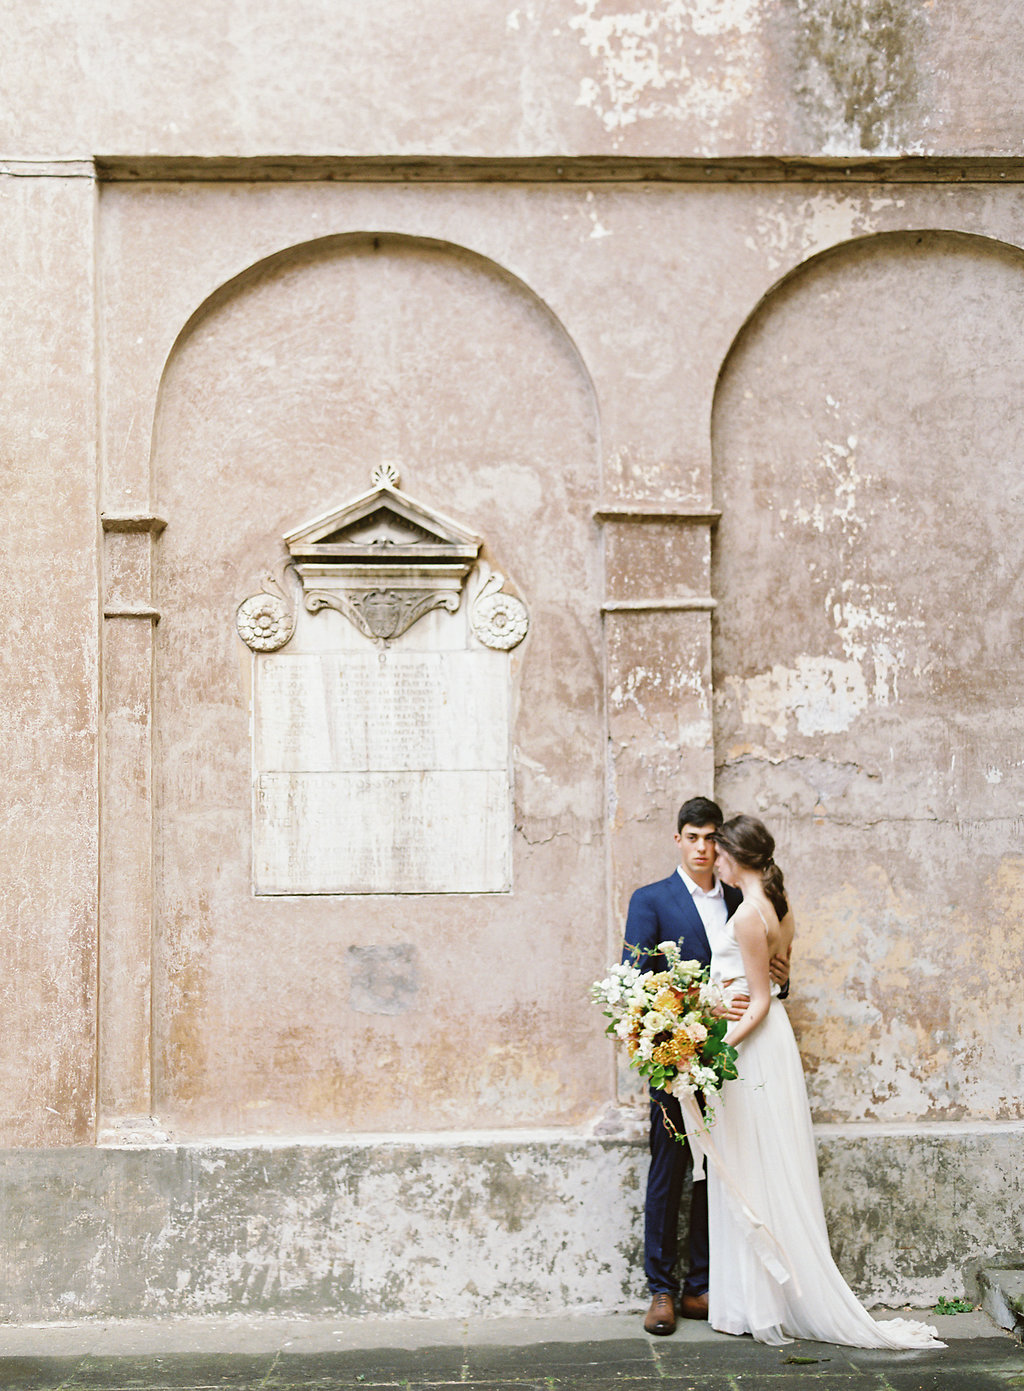 Vicki_Grafton_Photography_Rome_Italy_Wedding_Photographer_2017-58.jpg